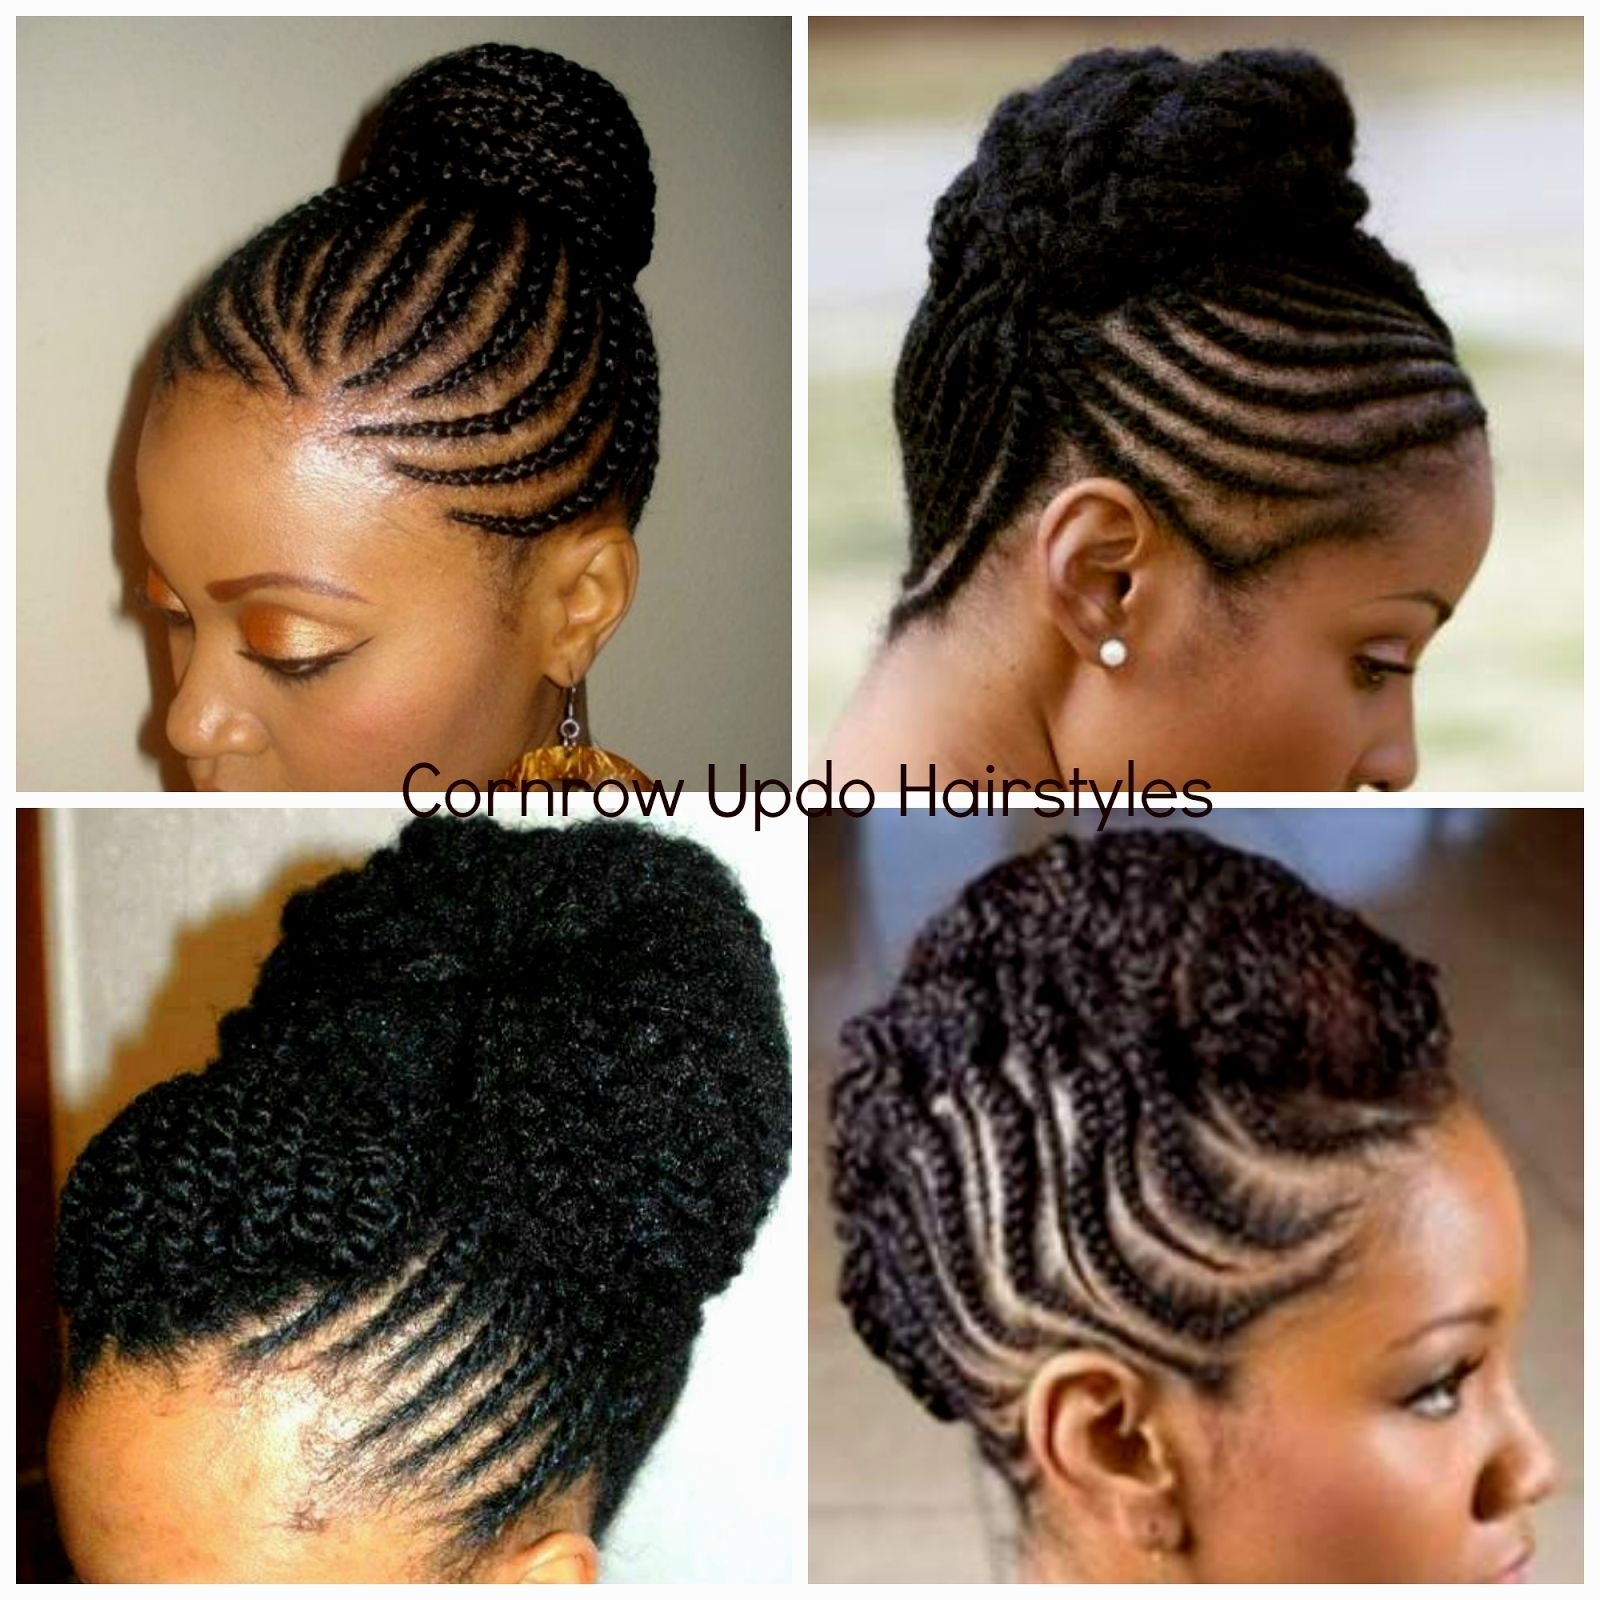 Cornrow Updo Hairstyles Cornrow Updo Hairstyles 2016 Hairstyles In Cornrow Updo Hairstyles (View 6 of 15)